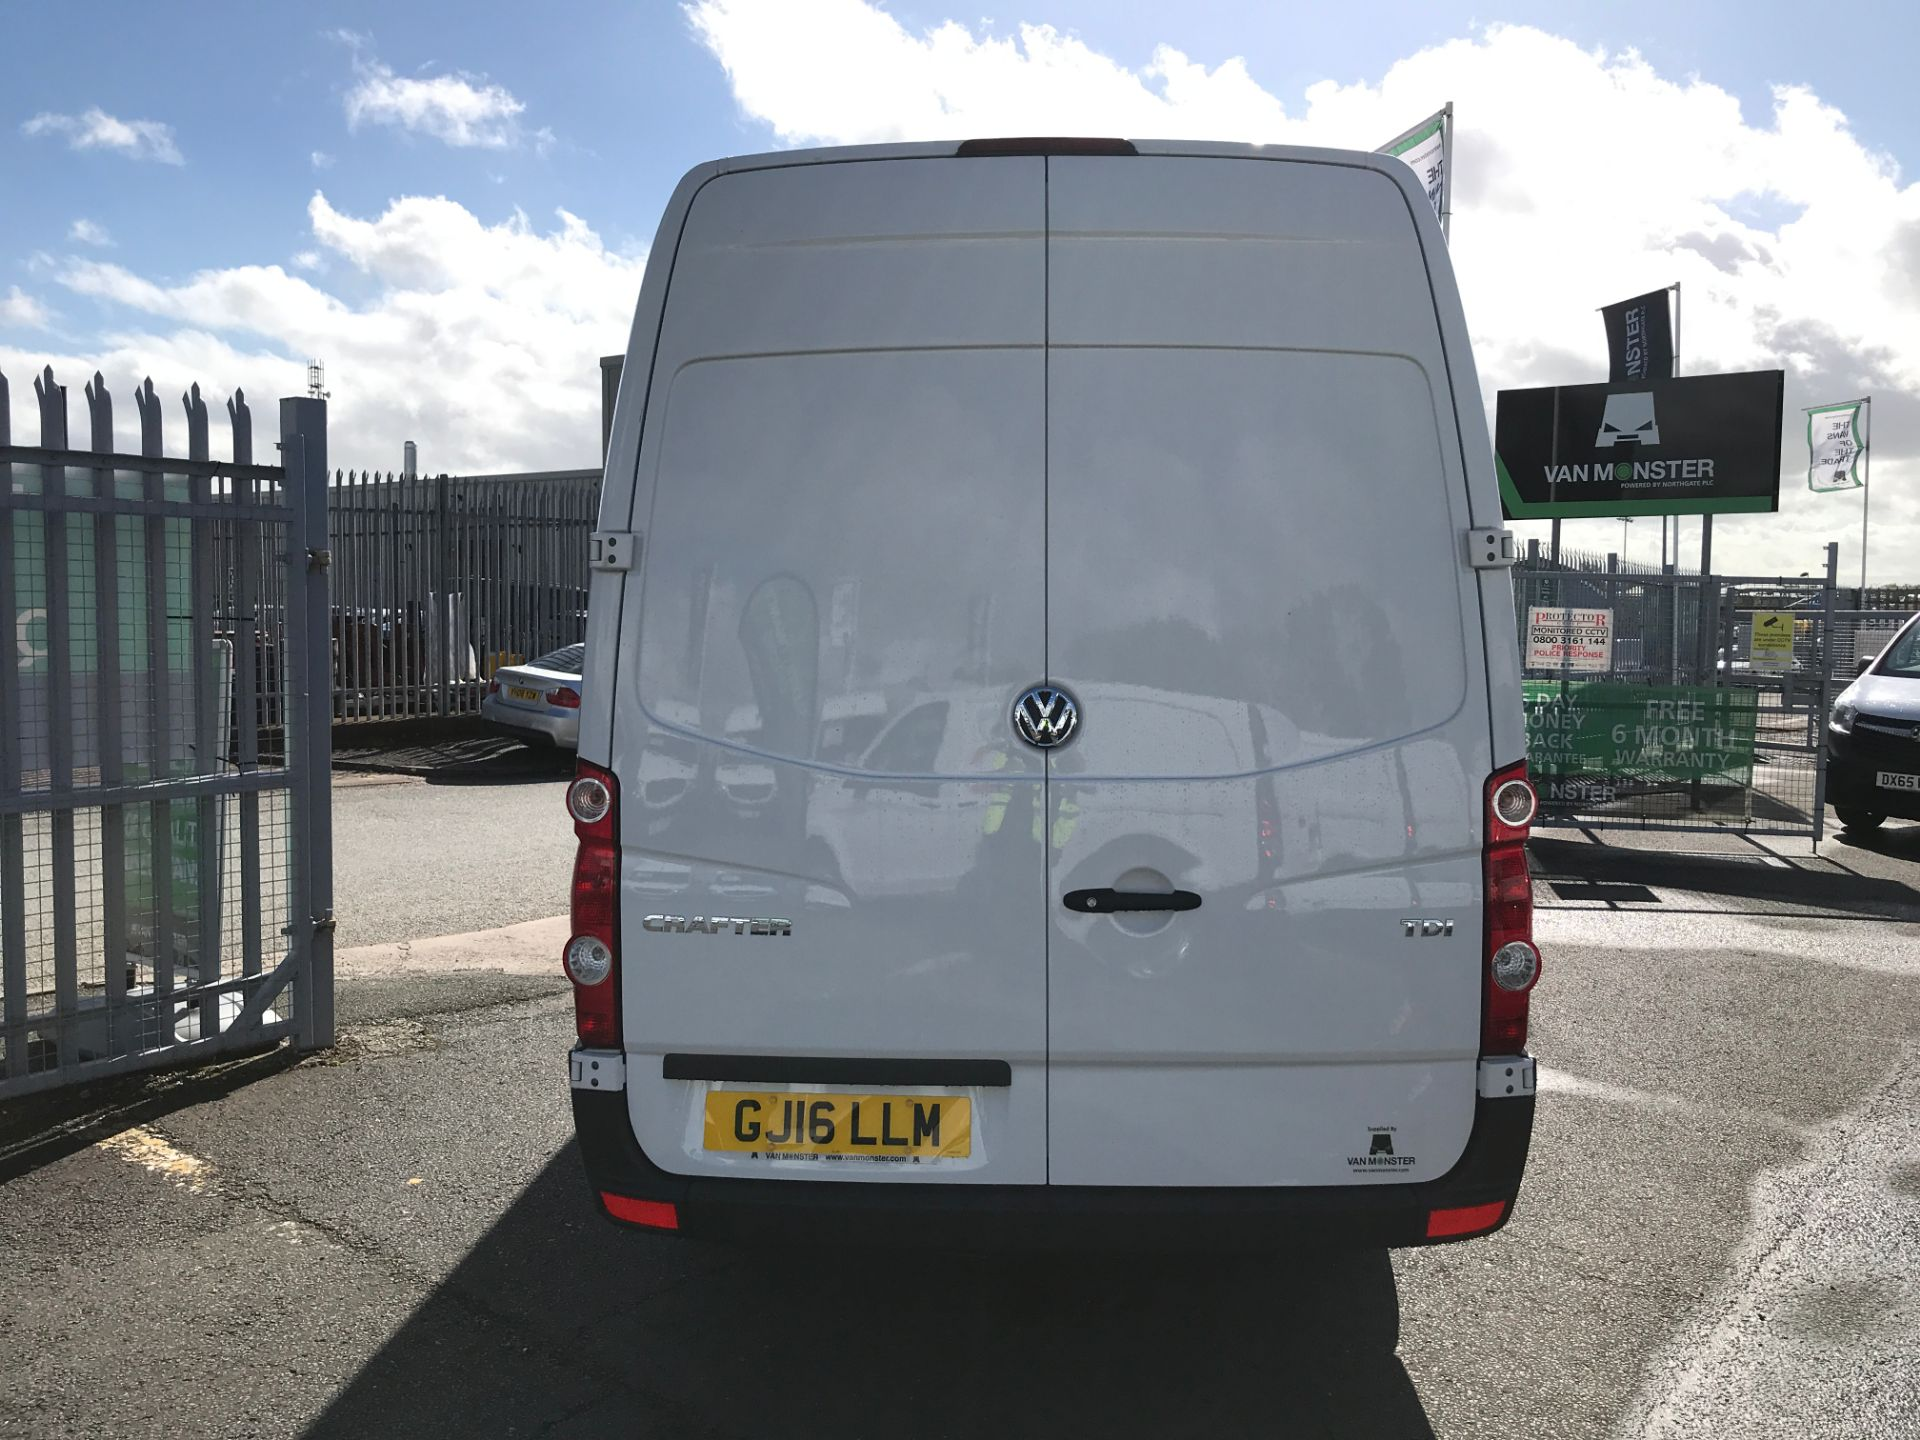 2016 Volkswagen Crafter  CR35 LWB HIGH ROOF 2.0TDI 136PS EURO 5 (GJ16LLM) Image 9